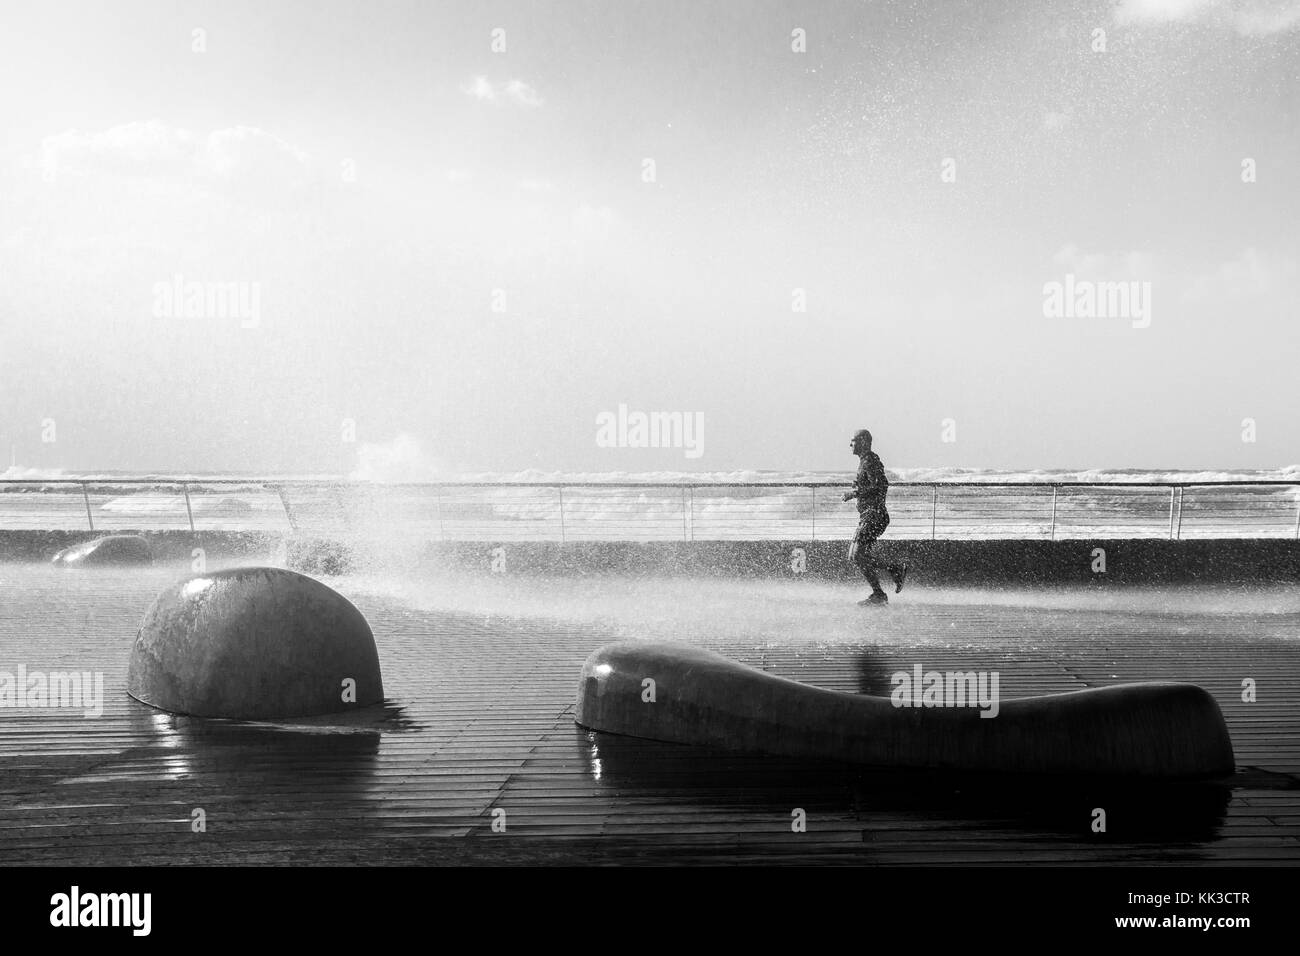 Runner gets splashed by a large wave at Tel Aviv Port, Israel - Stock Image